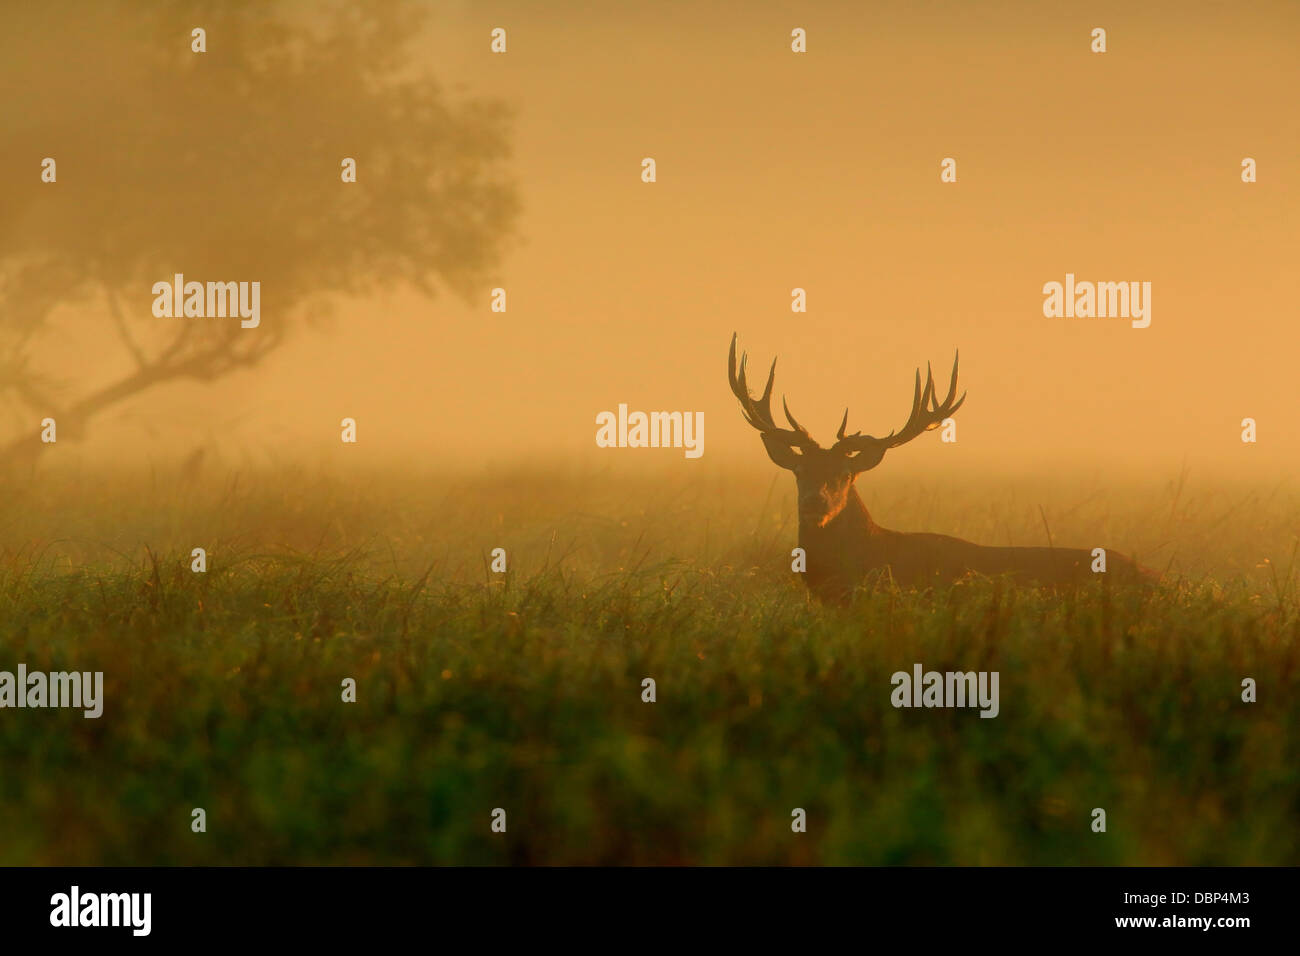 Stag In Morning Mist - Stock Image